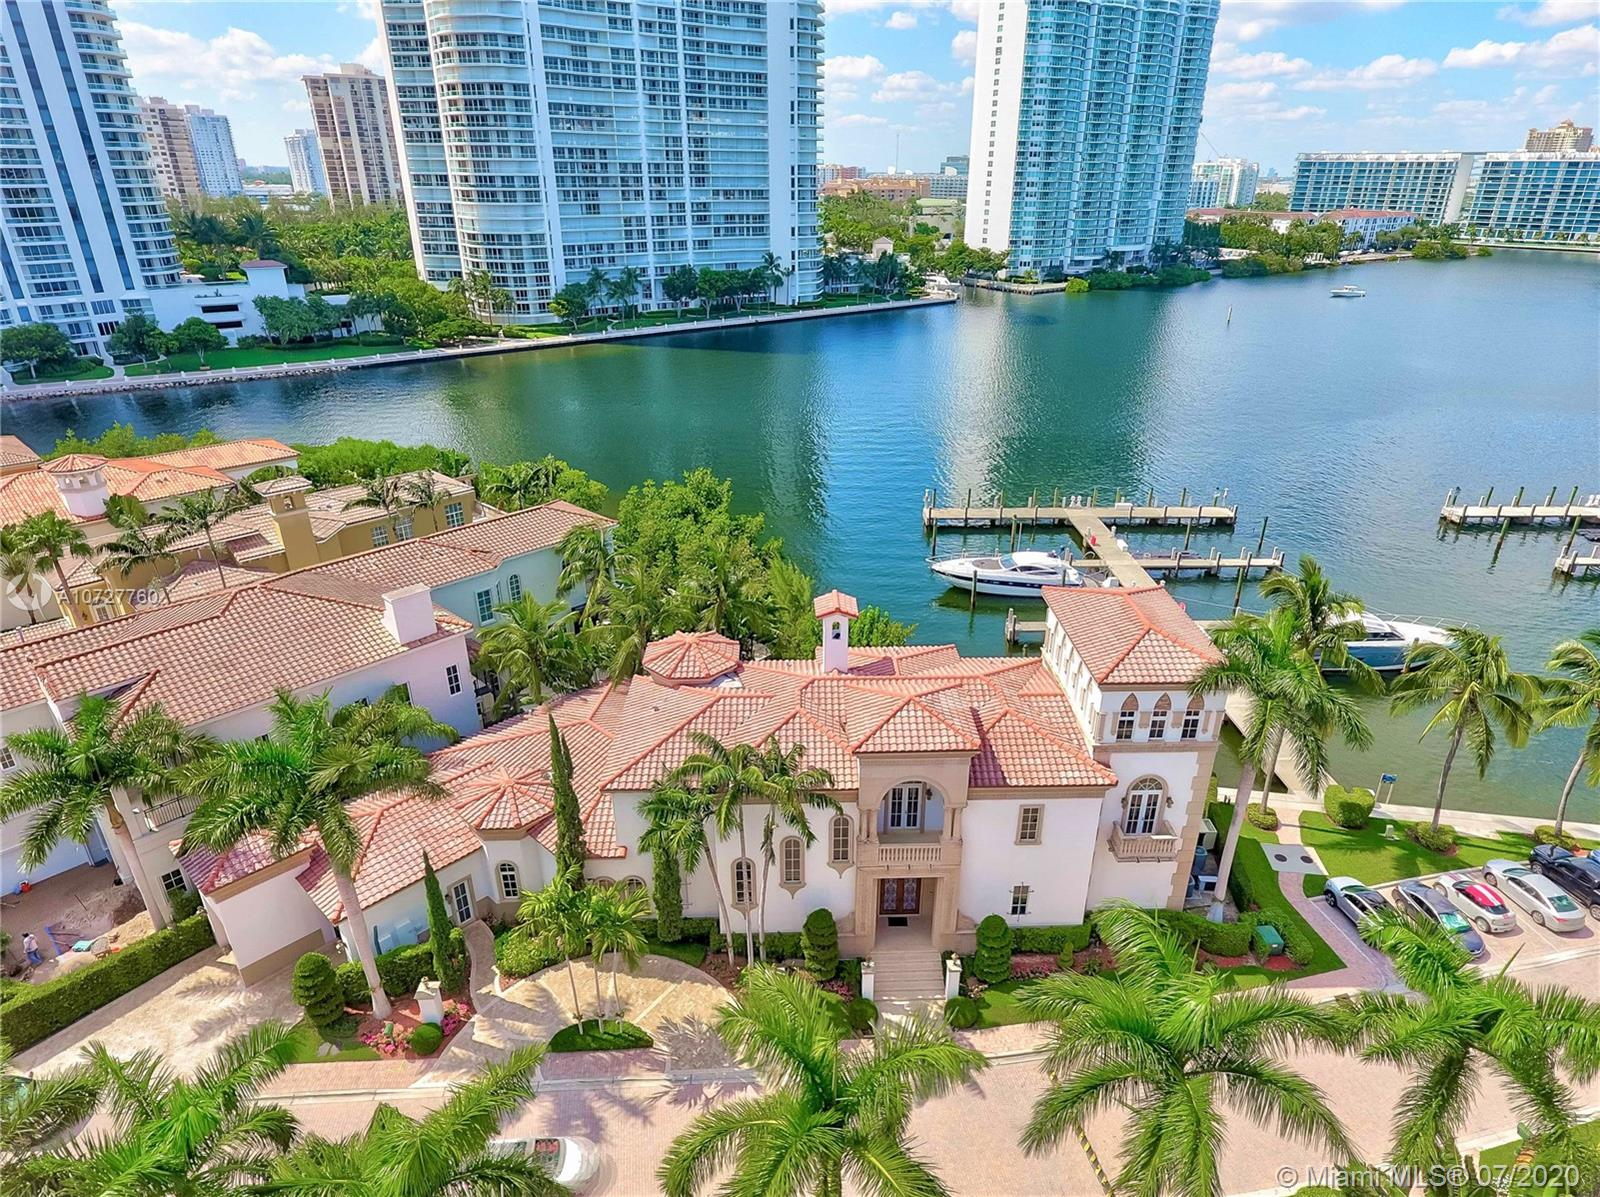 AVENTURA MOST EXCLUSIVE WATERFRONT VILLA IN THE PRESTIGIOUS, PRIVATE GATED COMMUNITY OF ISLAND ESTATES. CELEBRATED OPULENCE & TIMELESS LUXURY IN THIS MEDITERRANEAN MANSION WITH 6 BR/8.5 BA, OVER 7,300SQFT  WATER VIEWS, PRIVATE MARINA. GREAT FOR ENTERTAINMENT OPEN FLOOR PLAN, HIGH CEILINGS,  ELEVATOR, DUAL HUGE MASTER BEDROOMS, WINE ROOM, WET BAR, FIREPLACE, STEAM SHOWER, HEATED POOL/SPA, GOURMET & OUTDOOR KITCHEN, 2 STORY FOYER, OUTDOOR TERRACE, 50' BOAT SLIP INCLUDED DEEDED DOCK. A TRUE OASIS, LIVE ON YOUR OWN PRIVATE ISLAND . ENJOY THE AMENITIES OF THE WILLIAMS ISLAND & PRIVE FIVE START AMENITIES 16 TENNIS COURTS, SPA, INDOOR LAP POOL, HAIR SALON, 3 RESTAURANTS, CIGAR LOUNGE, MARINA FOR YACHTS, KIDS PLAYGROUND, DOGGIES HILL PLAY AREA, WALKING/RUNNING TRAIL & MUCH MORE!!